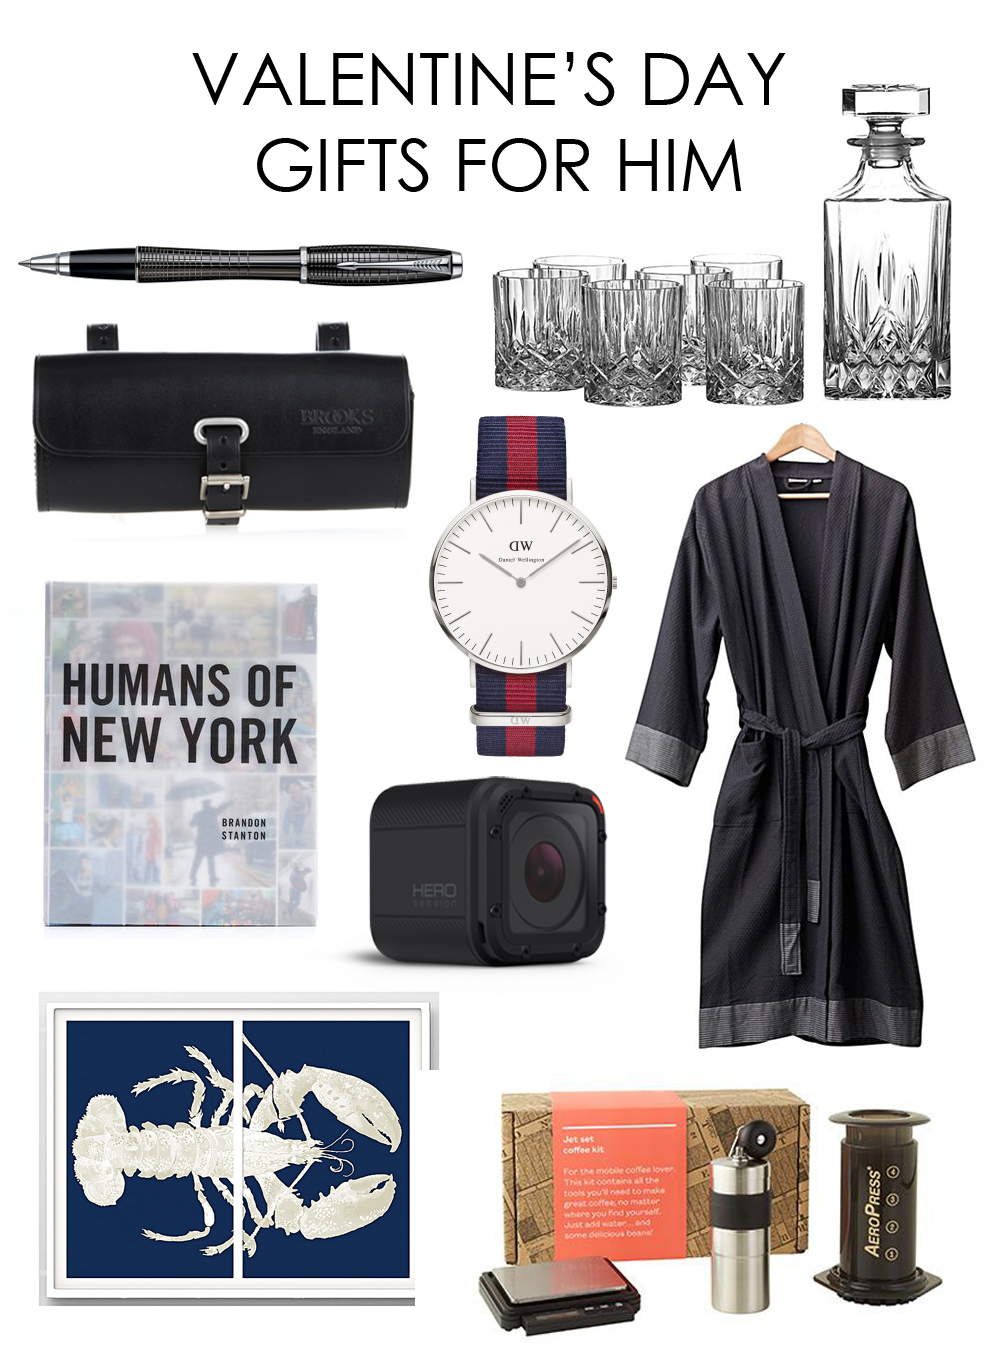 Day gifts for him 28 images s day gift ideas for him for Valentines day gifts for him ideas